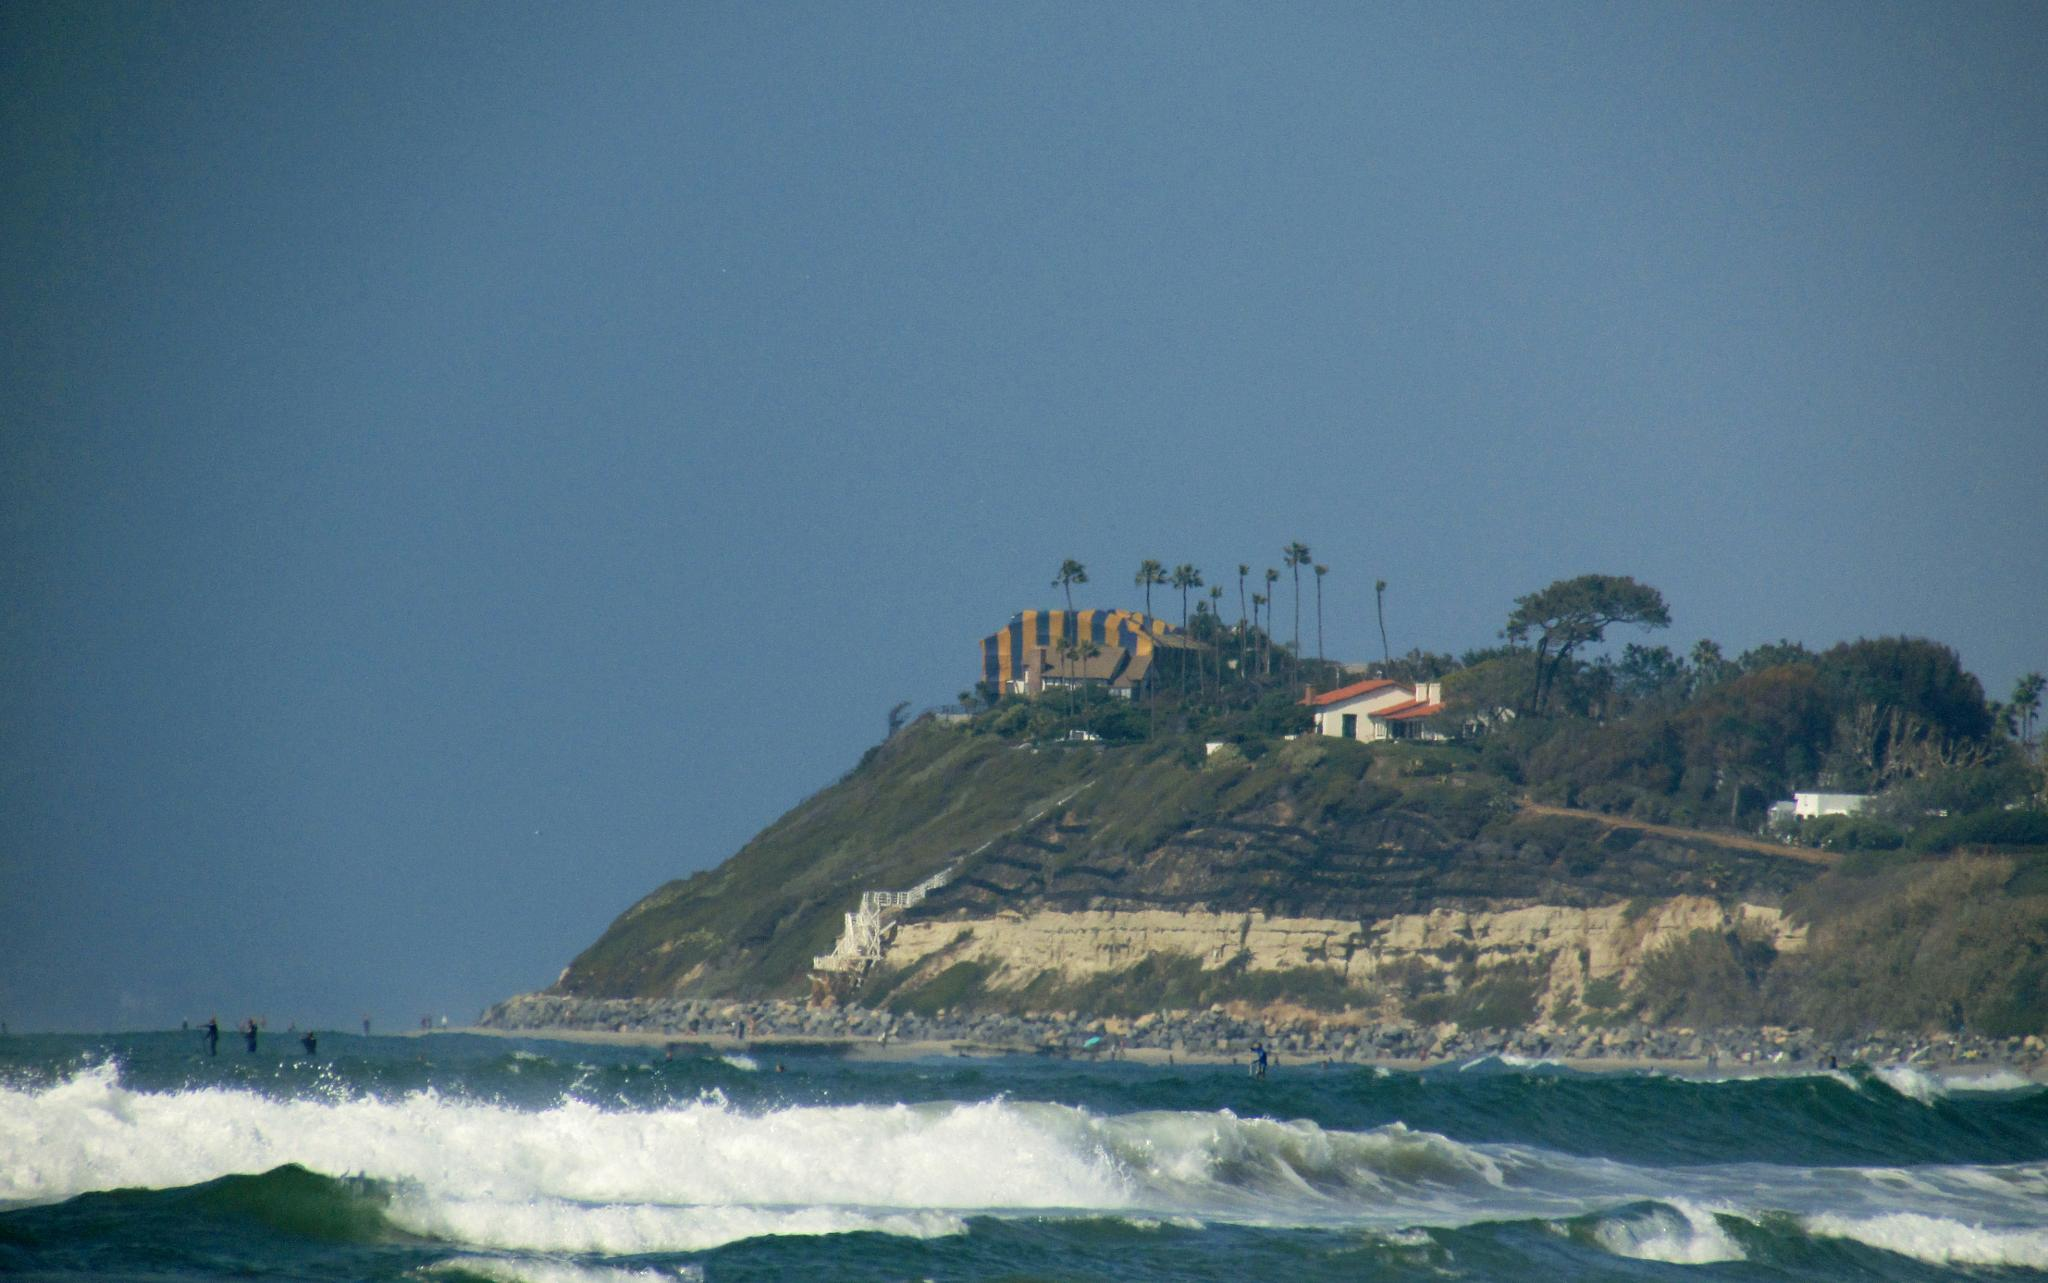 Cardiff by the Sea, California by Lisa Marshall Moore